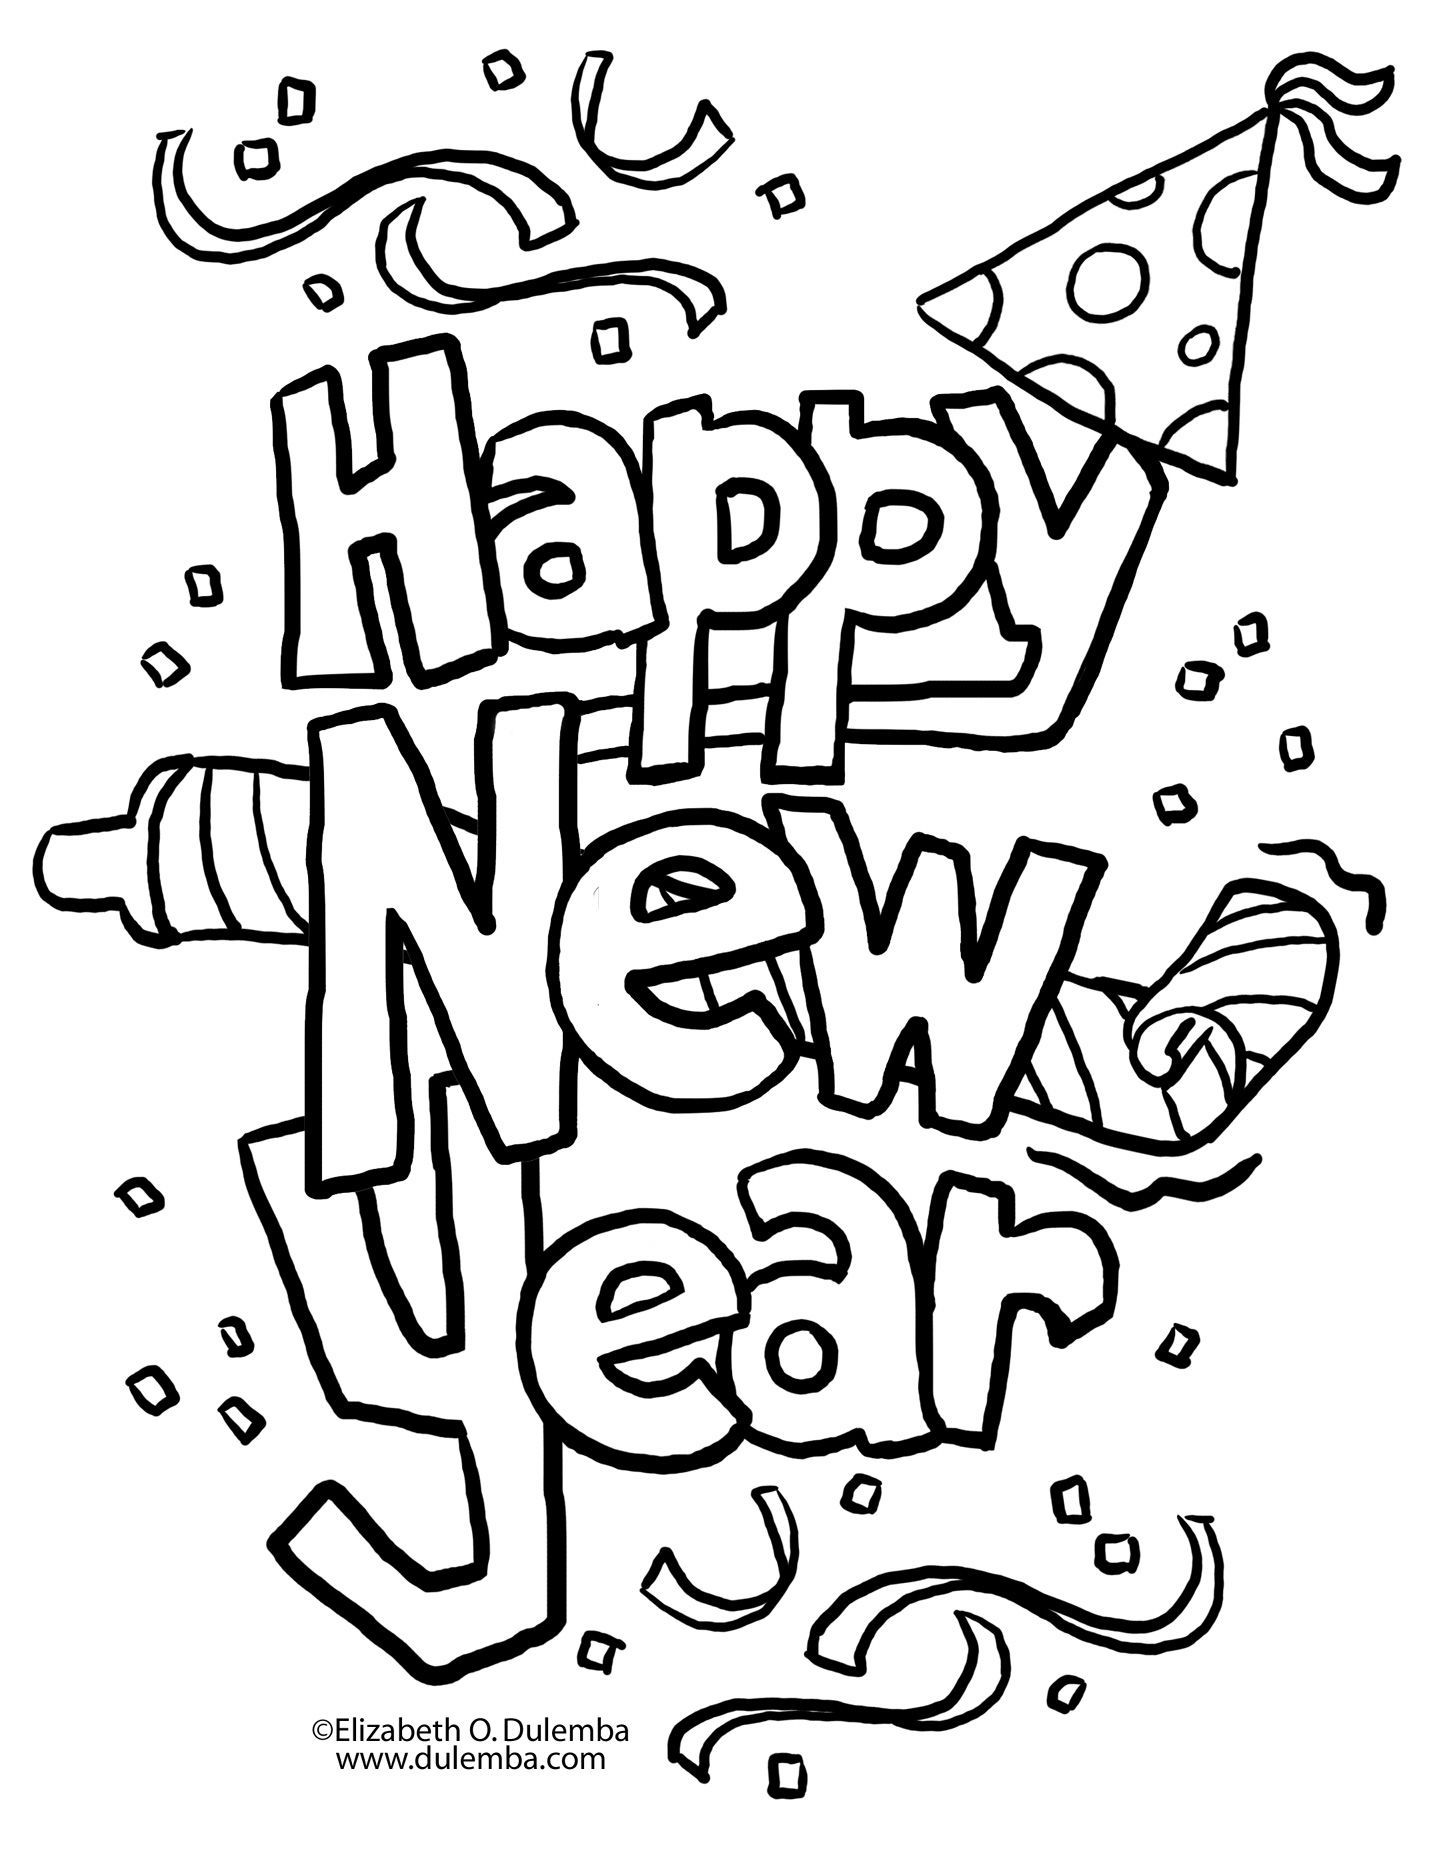 f29369f4d39fff51a76ab3f838b29207 furthermore new years coloring pages getcoloringpages  on disney new years eve coloring pages also new years coloring pages getcoloringpages  on disney new years eve coloring pages further new years coloring pages getcoloringpages  on disney new years eve coloring pages as well as happy new year coloring pages coloring the world on disney new years eve coloring pages